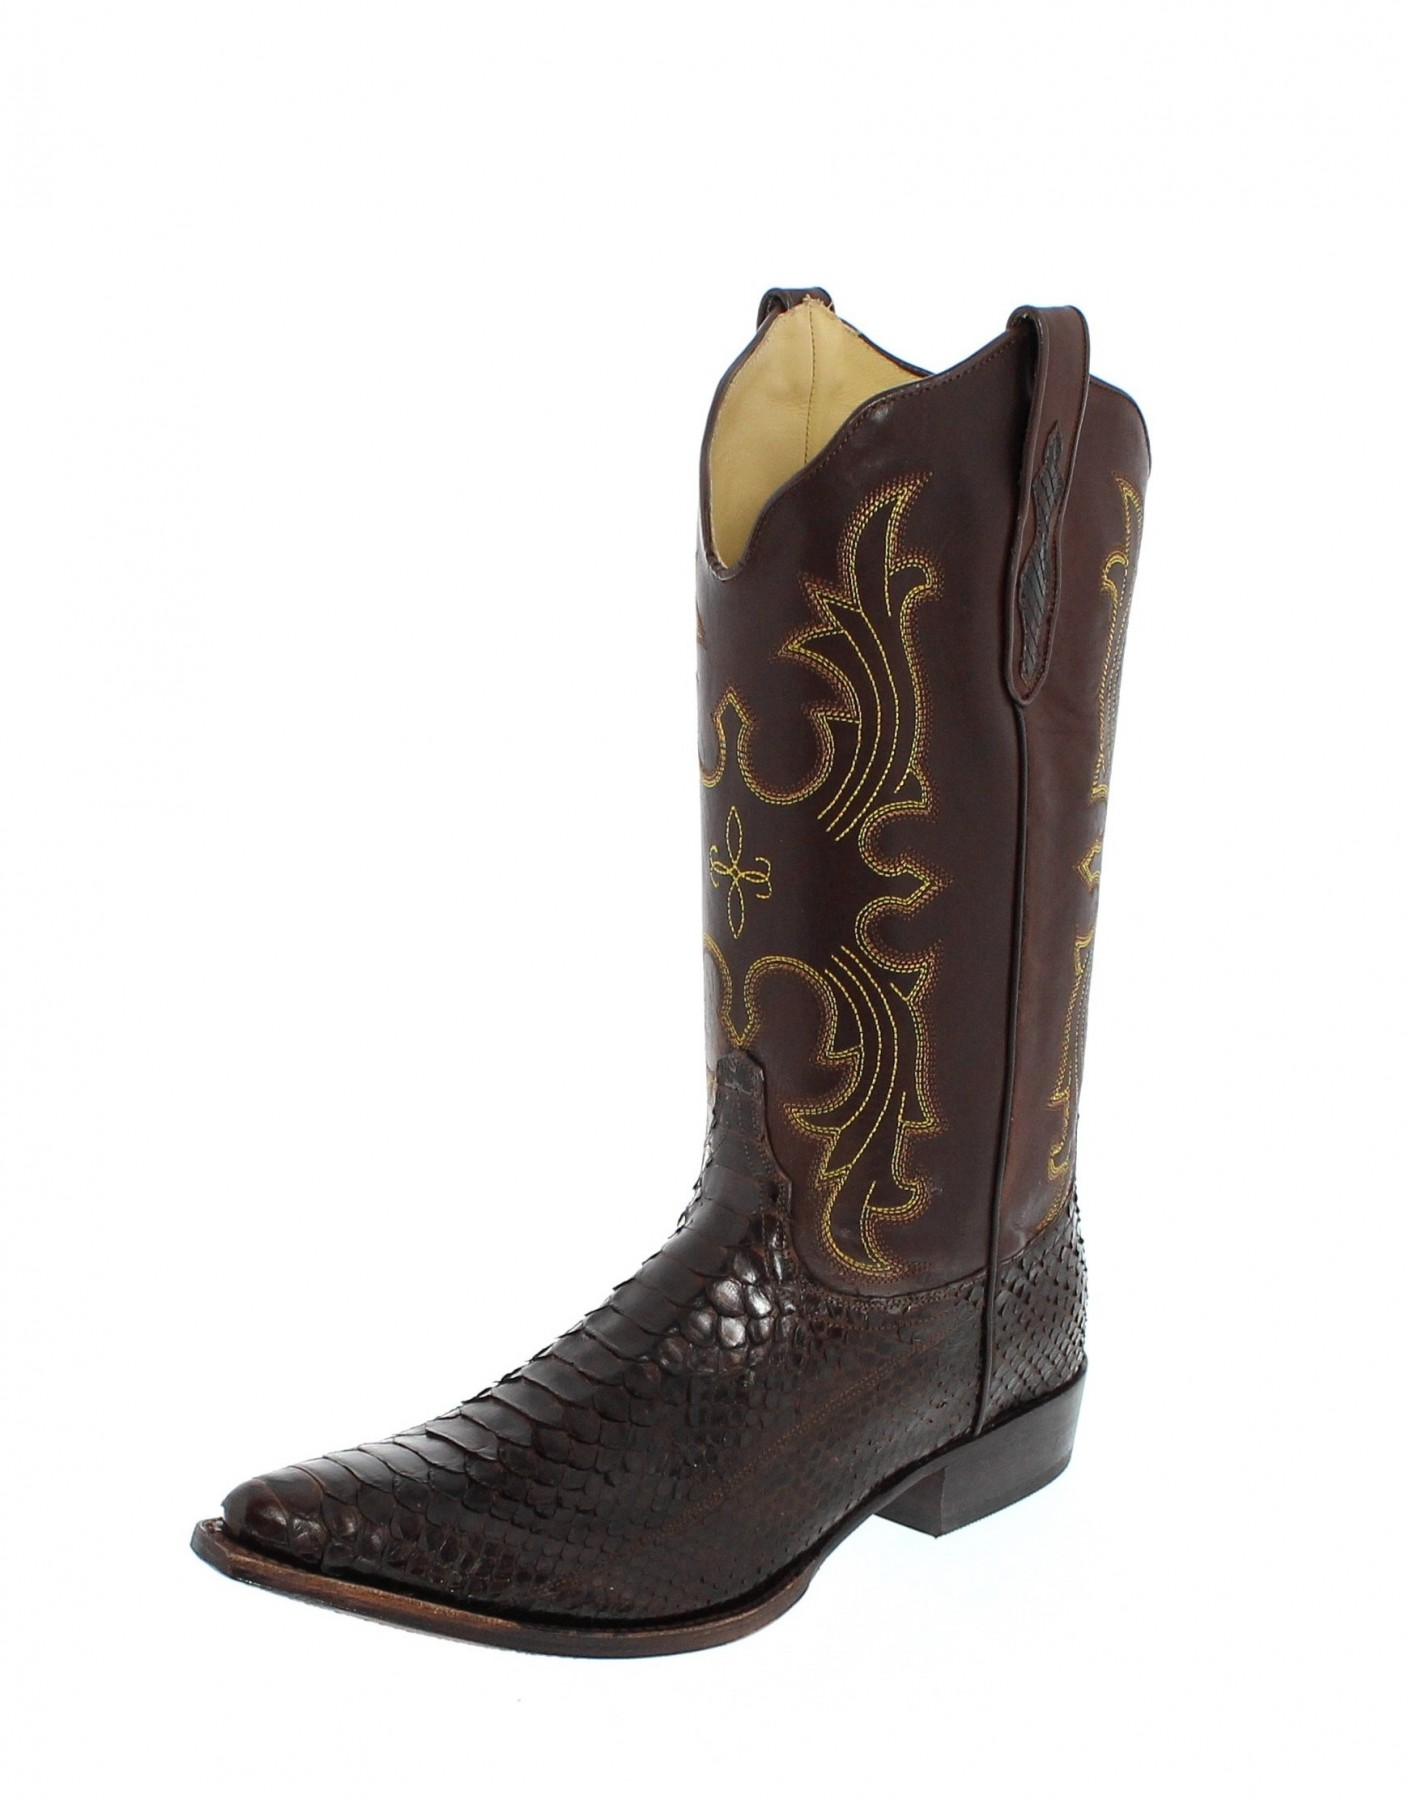 tony mora 1418 python marron exotic western boot - brown | fashion